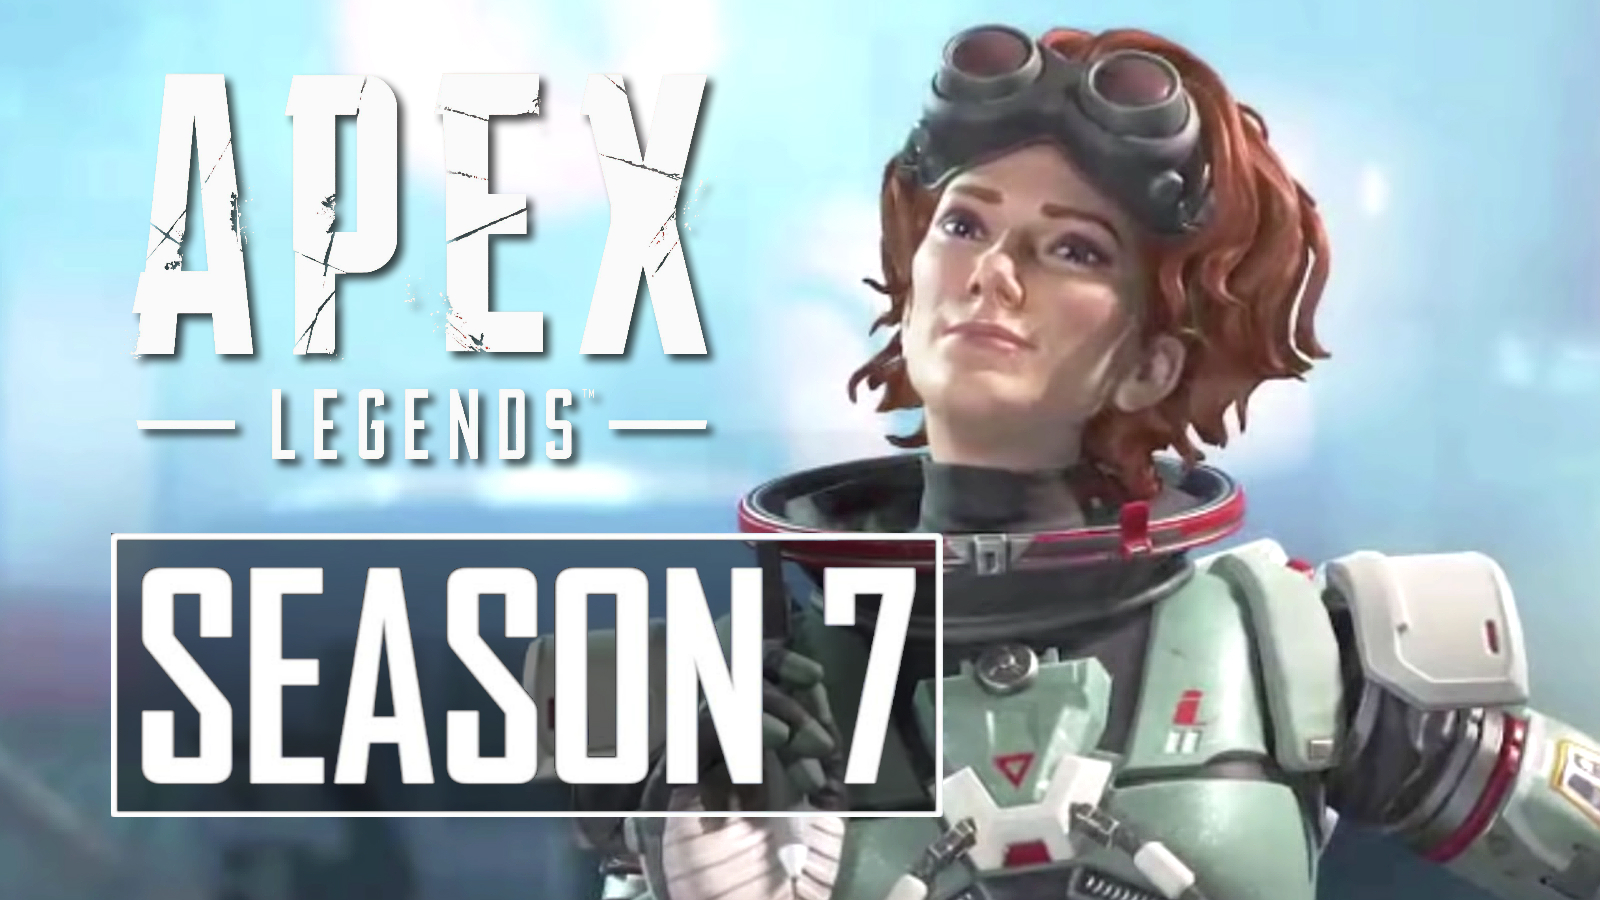 Horizon in Apex Legends Season 7